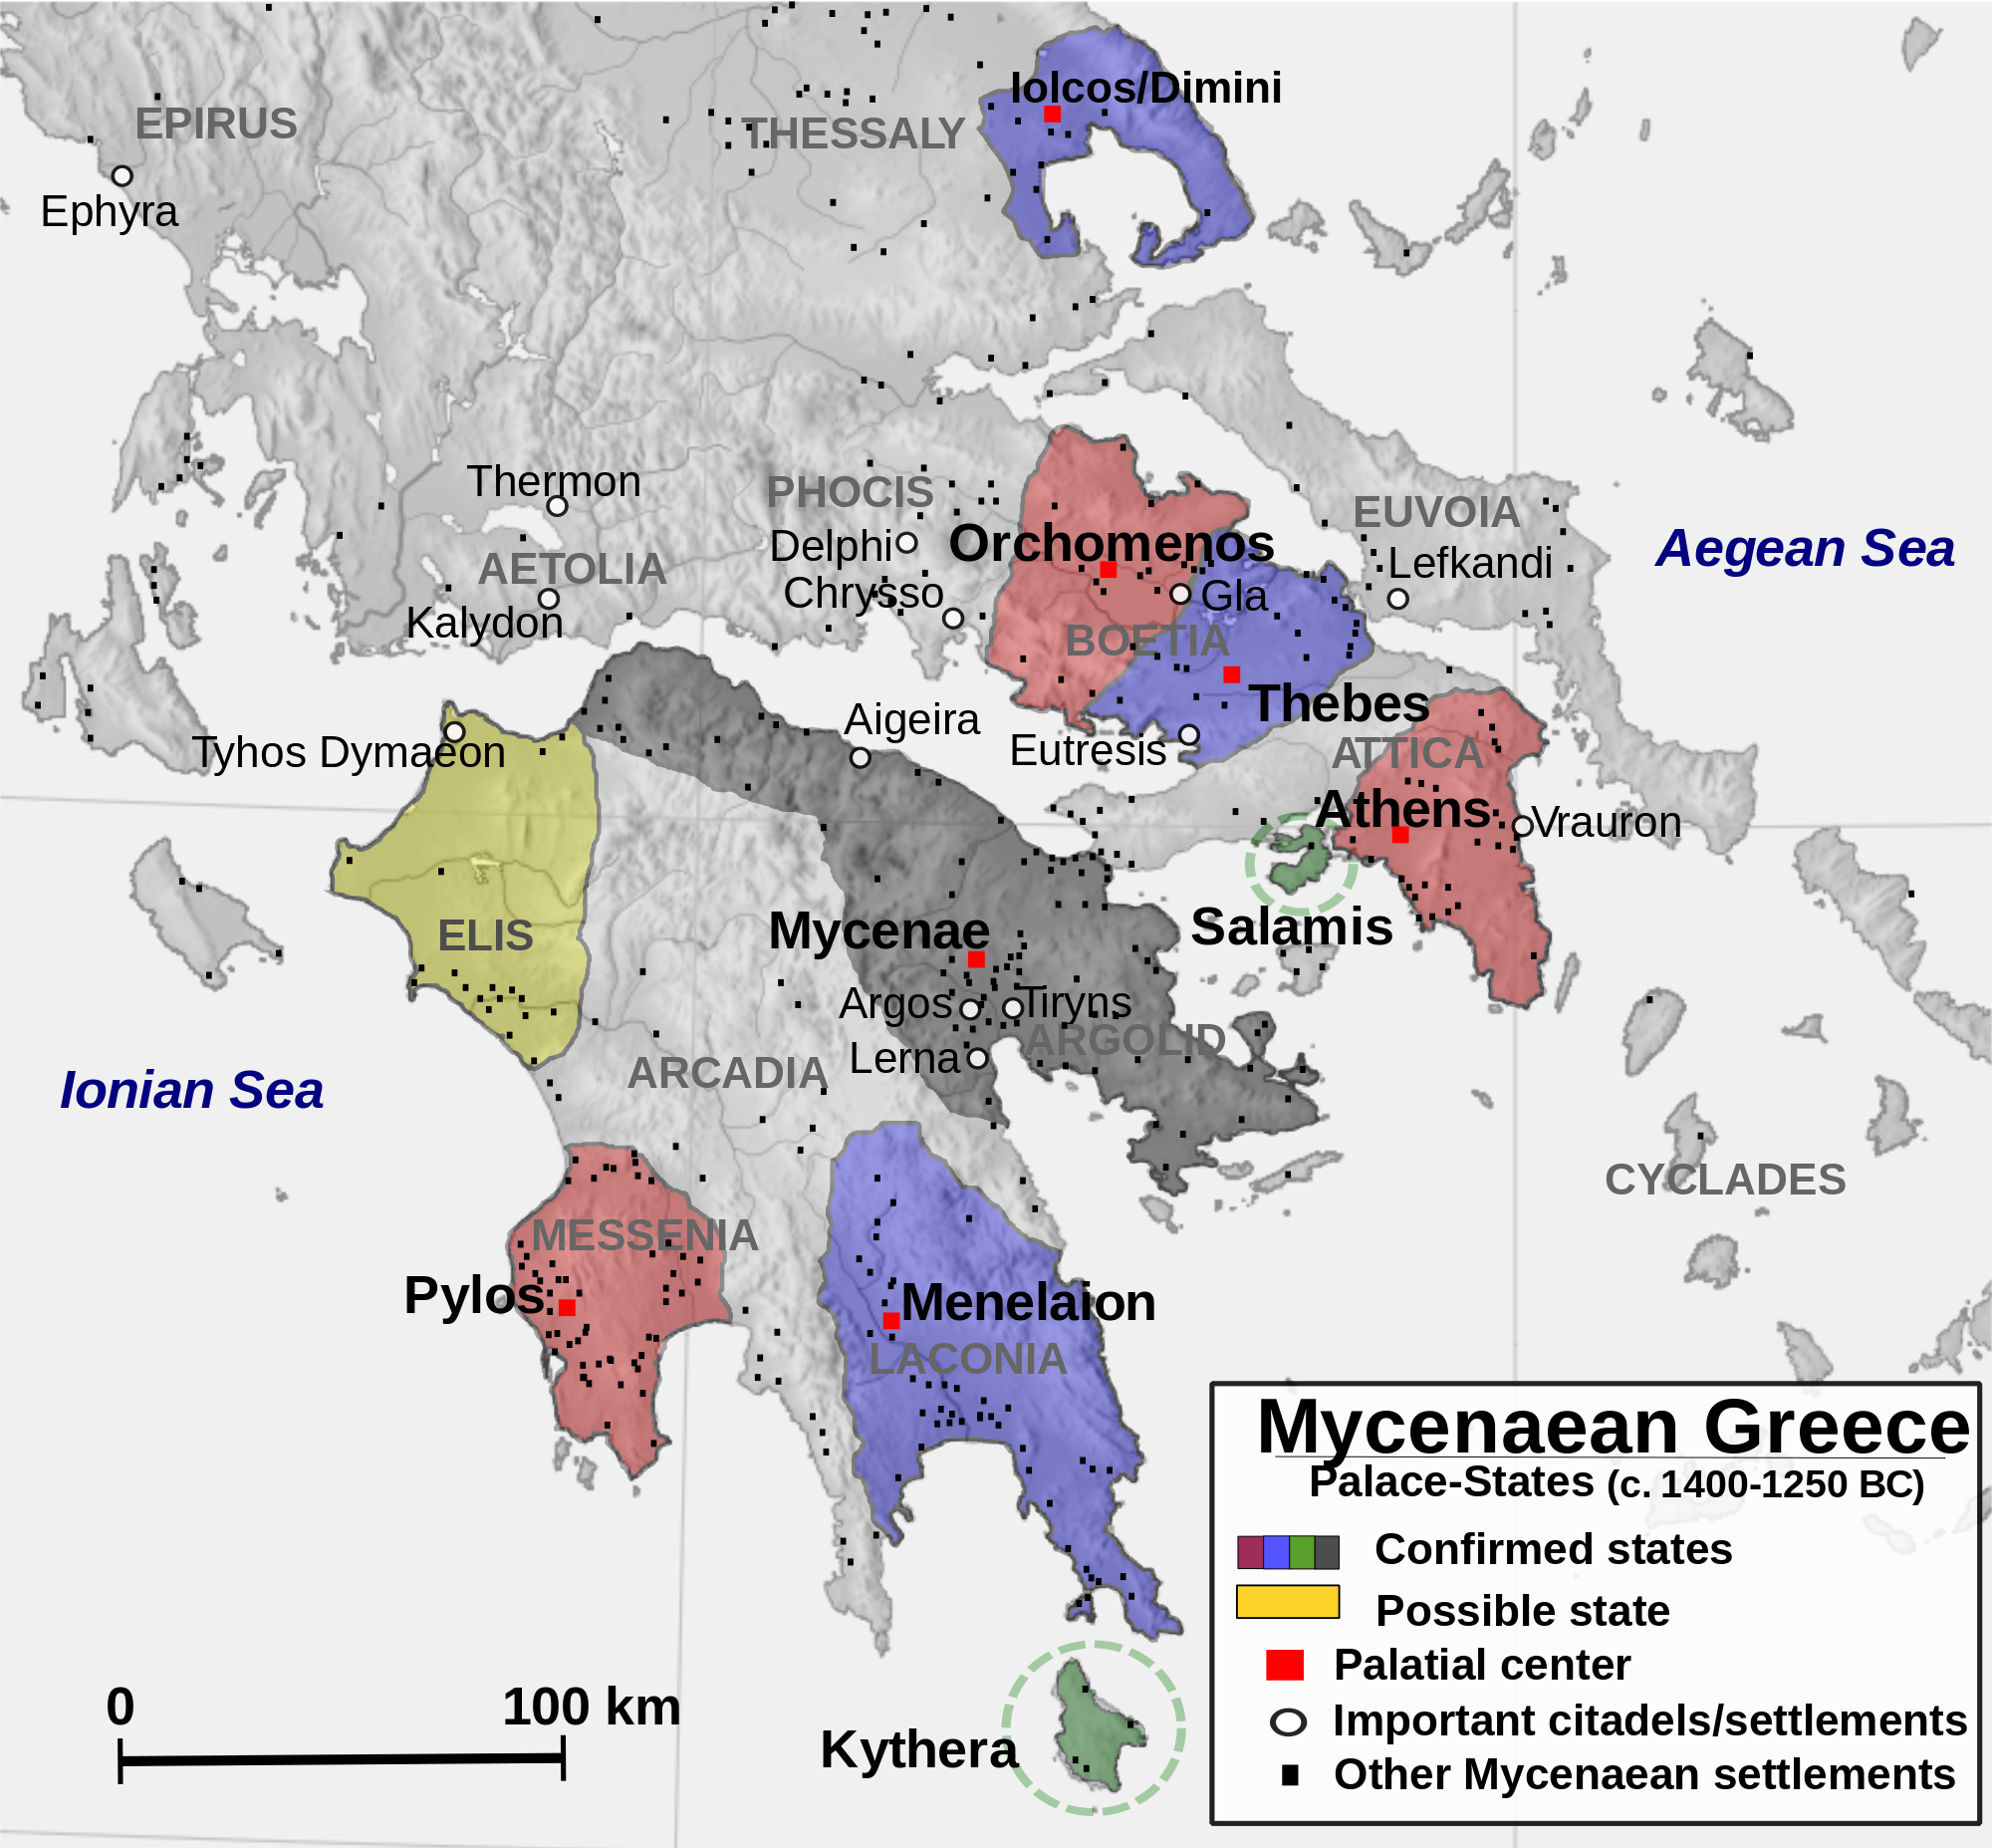 Pin By Darrell Vaughn On Aa Map Pinterest - Political map of greece